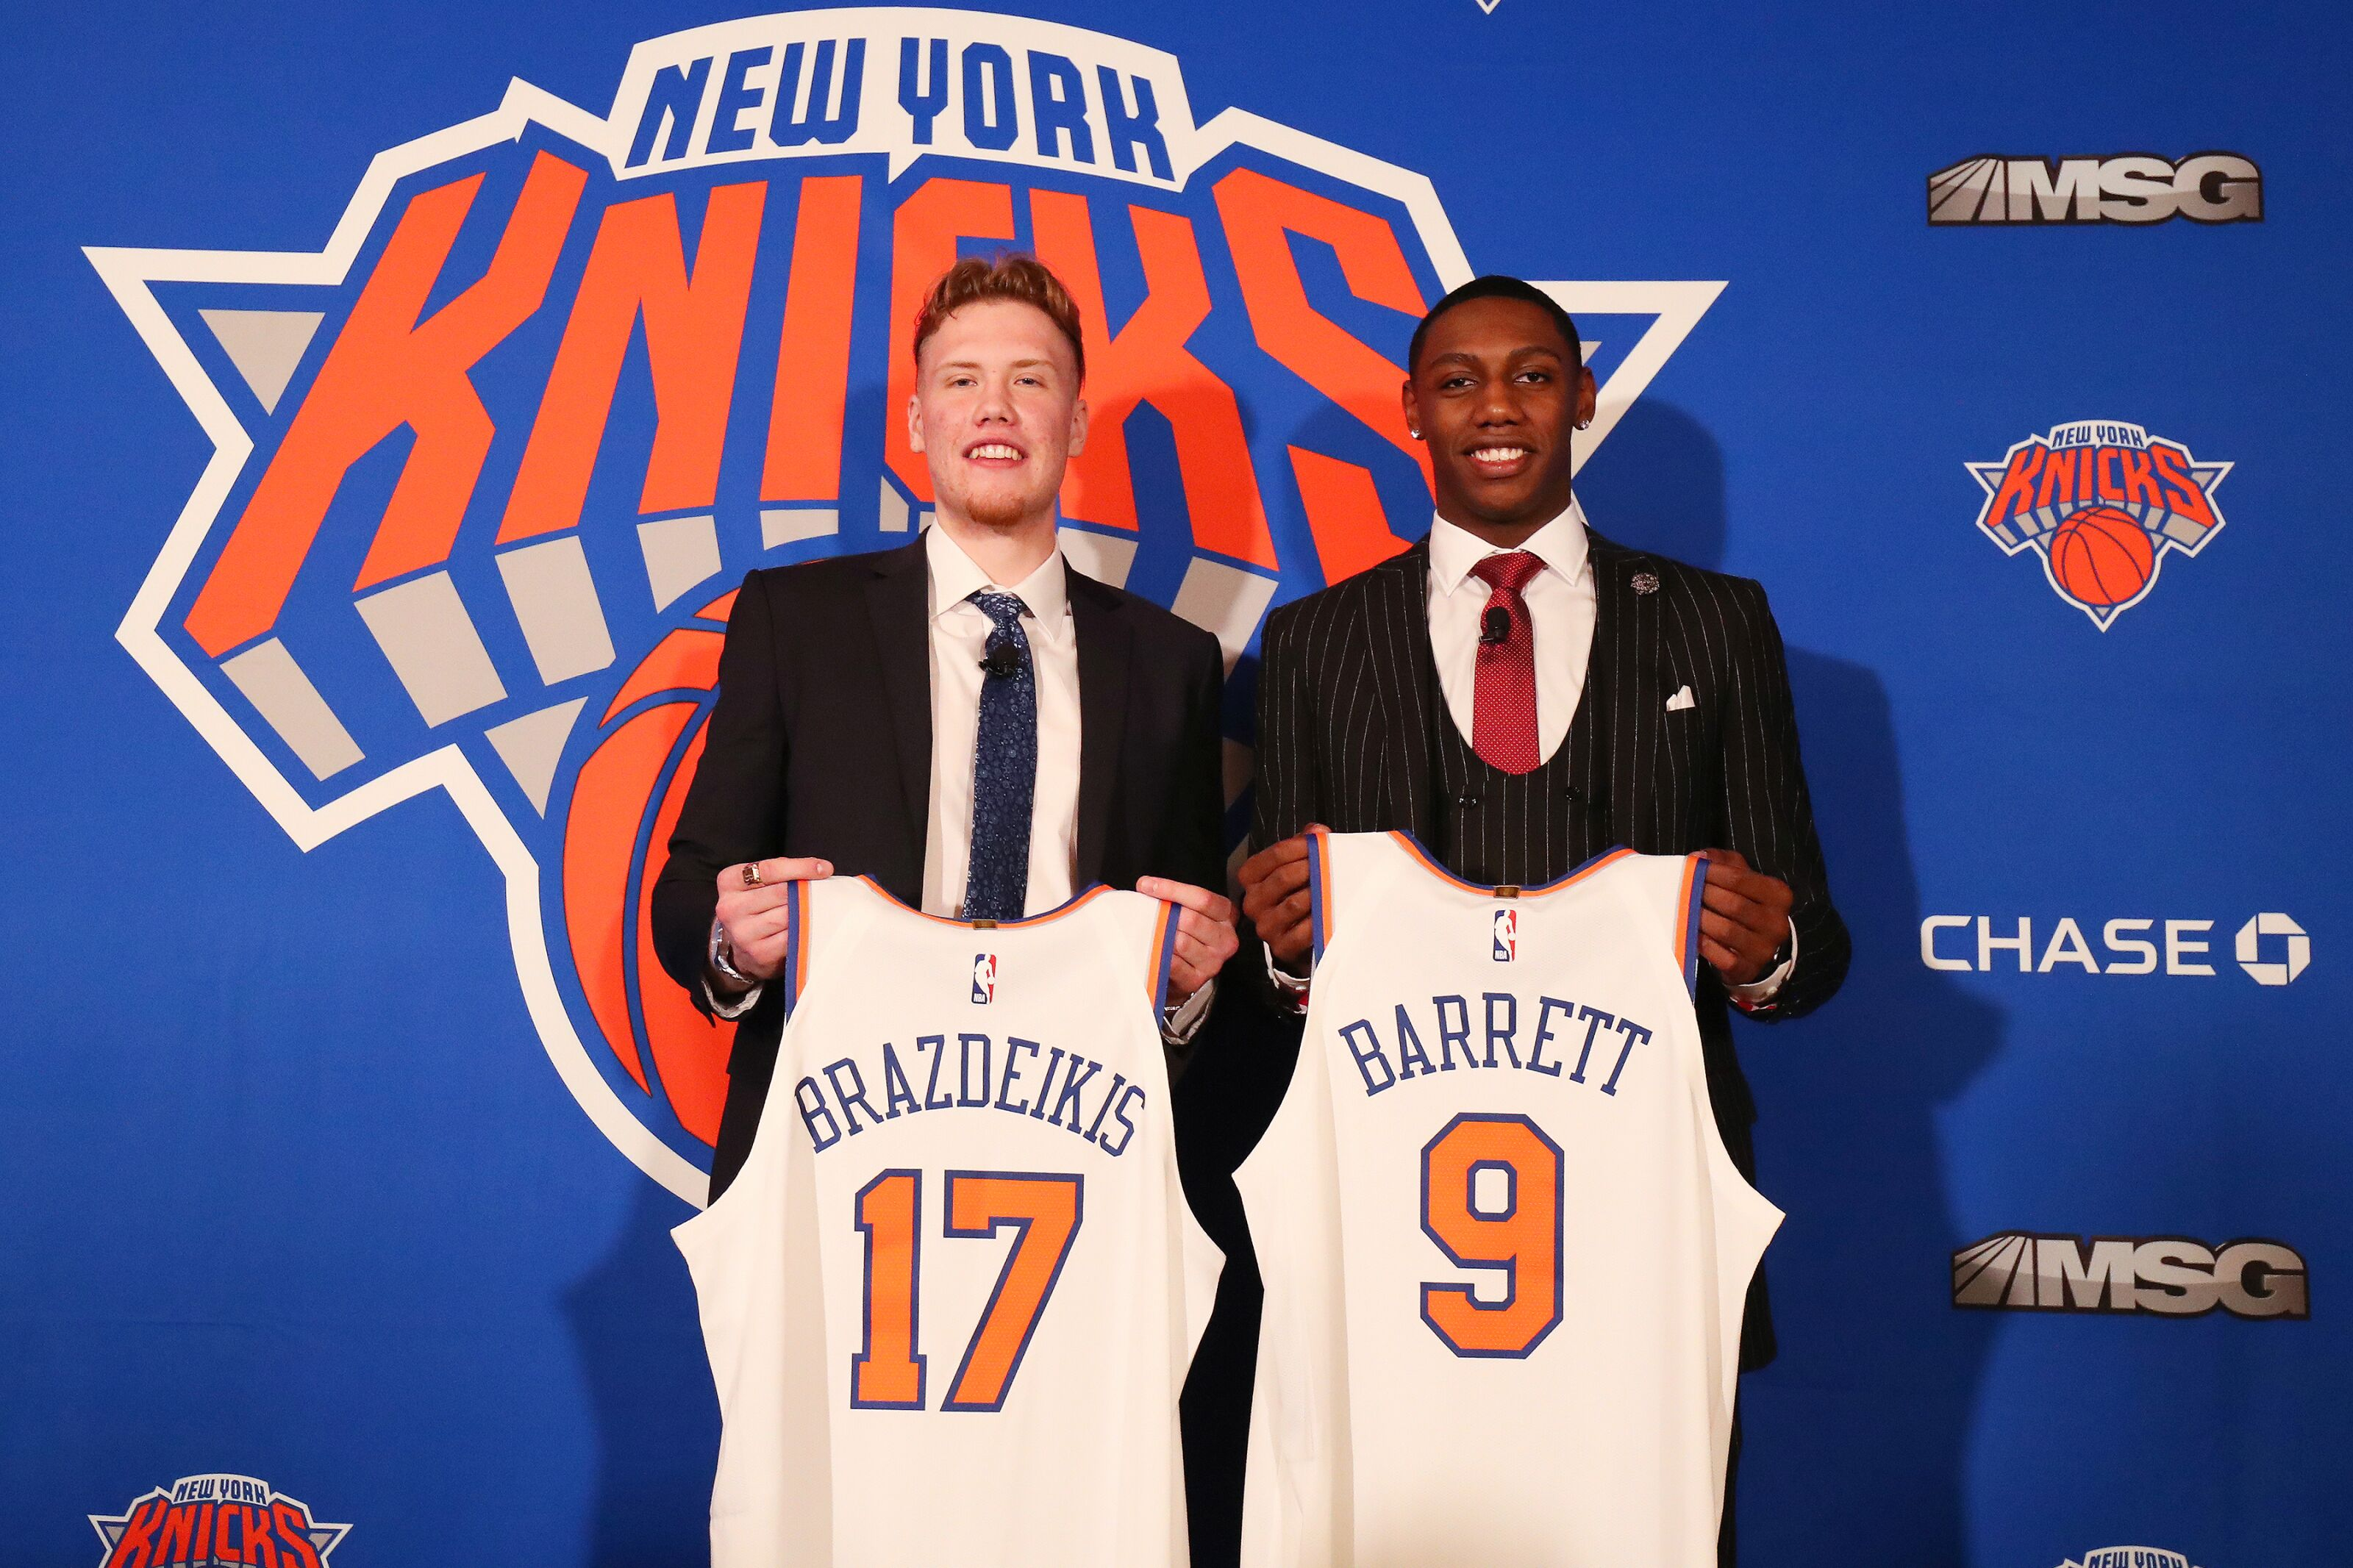 New York Knicks: Despite veteran additions, youth projects to shine again